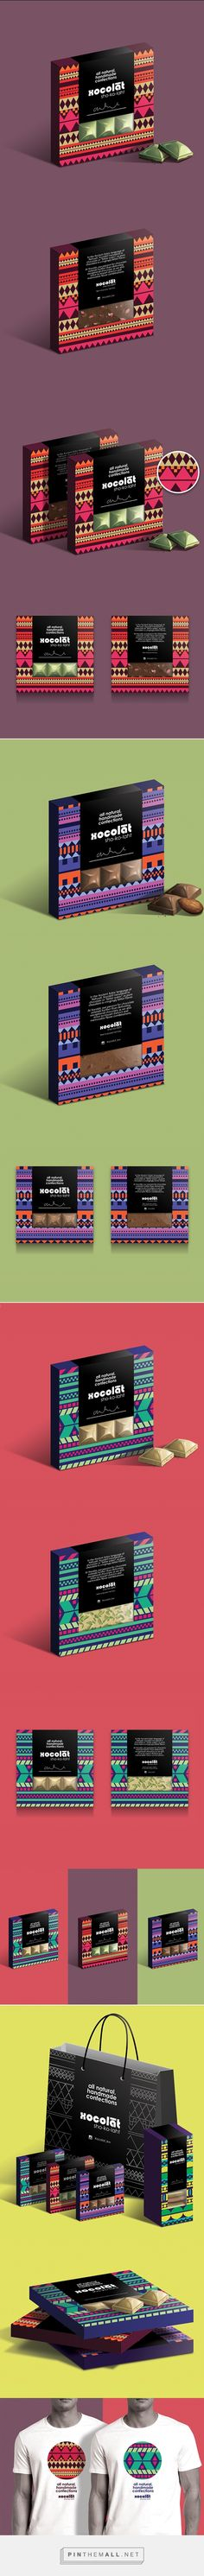 Xocolat Chocolate Packaging on Behance by Studio AIO curated by Packaging Diva PD.  Packaging for Xocolat, a confections shop selling delicious hand made chocolates & macaroons.